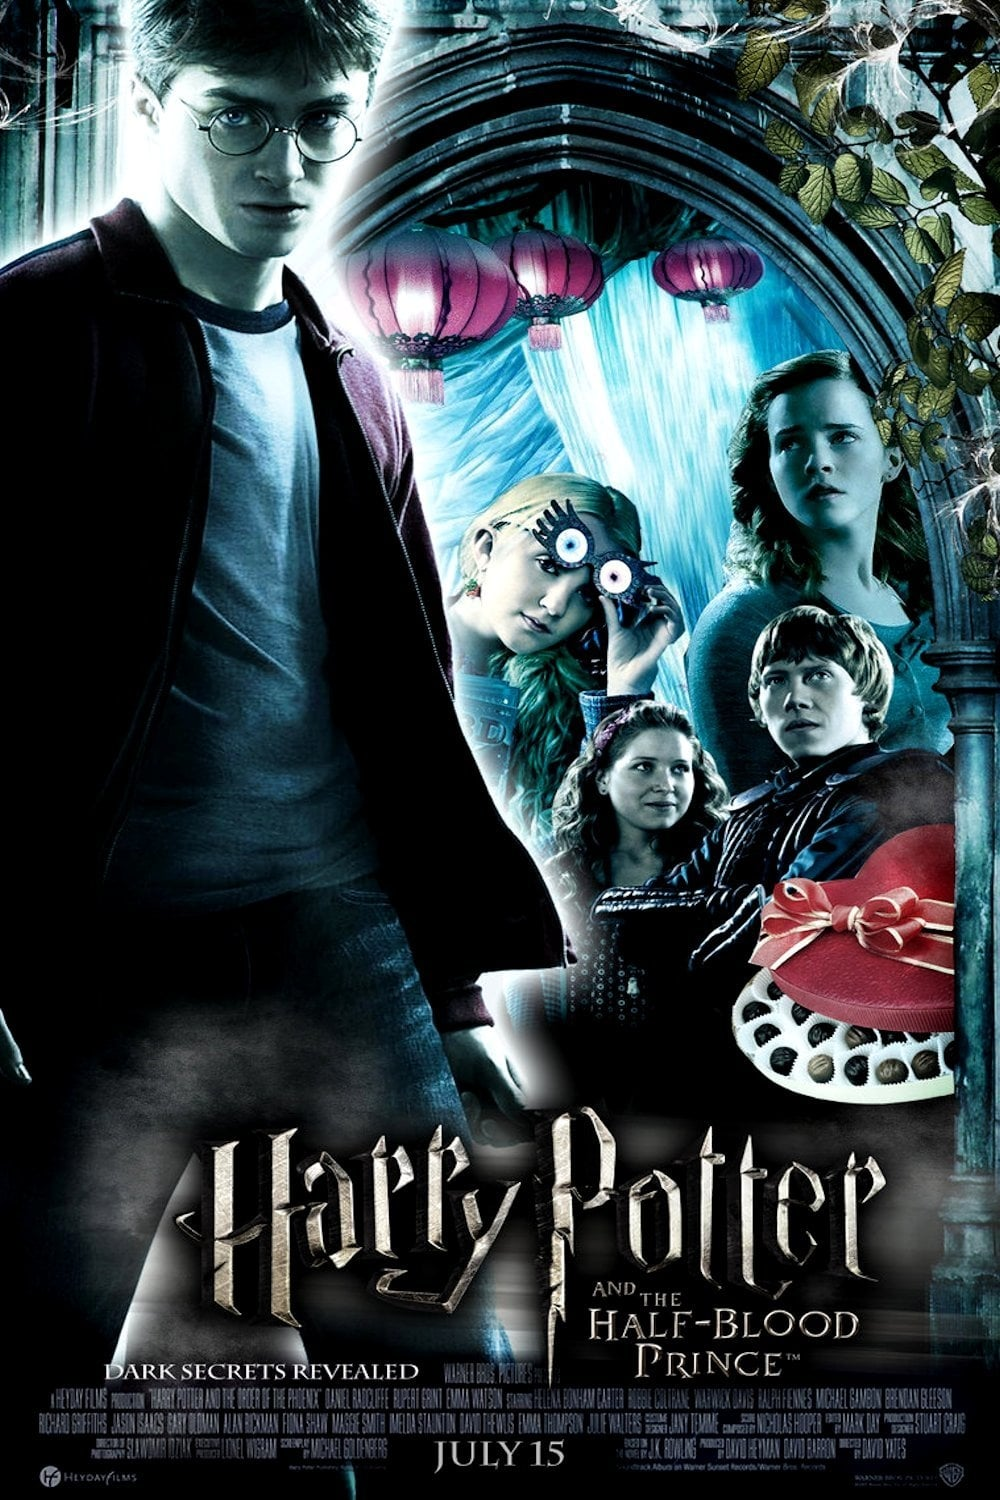 a review of harry potter and the half blood prince by jk rowling Horror harry potter and the half-blood prince dvds & blu-ray discs, harry potter and the half-blood prince 3d dvds , full screen harry potter and the half-blood prince dvds .